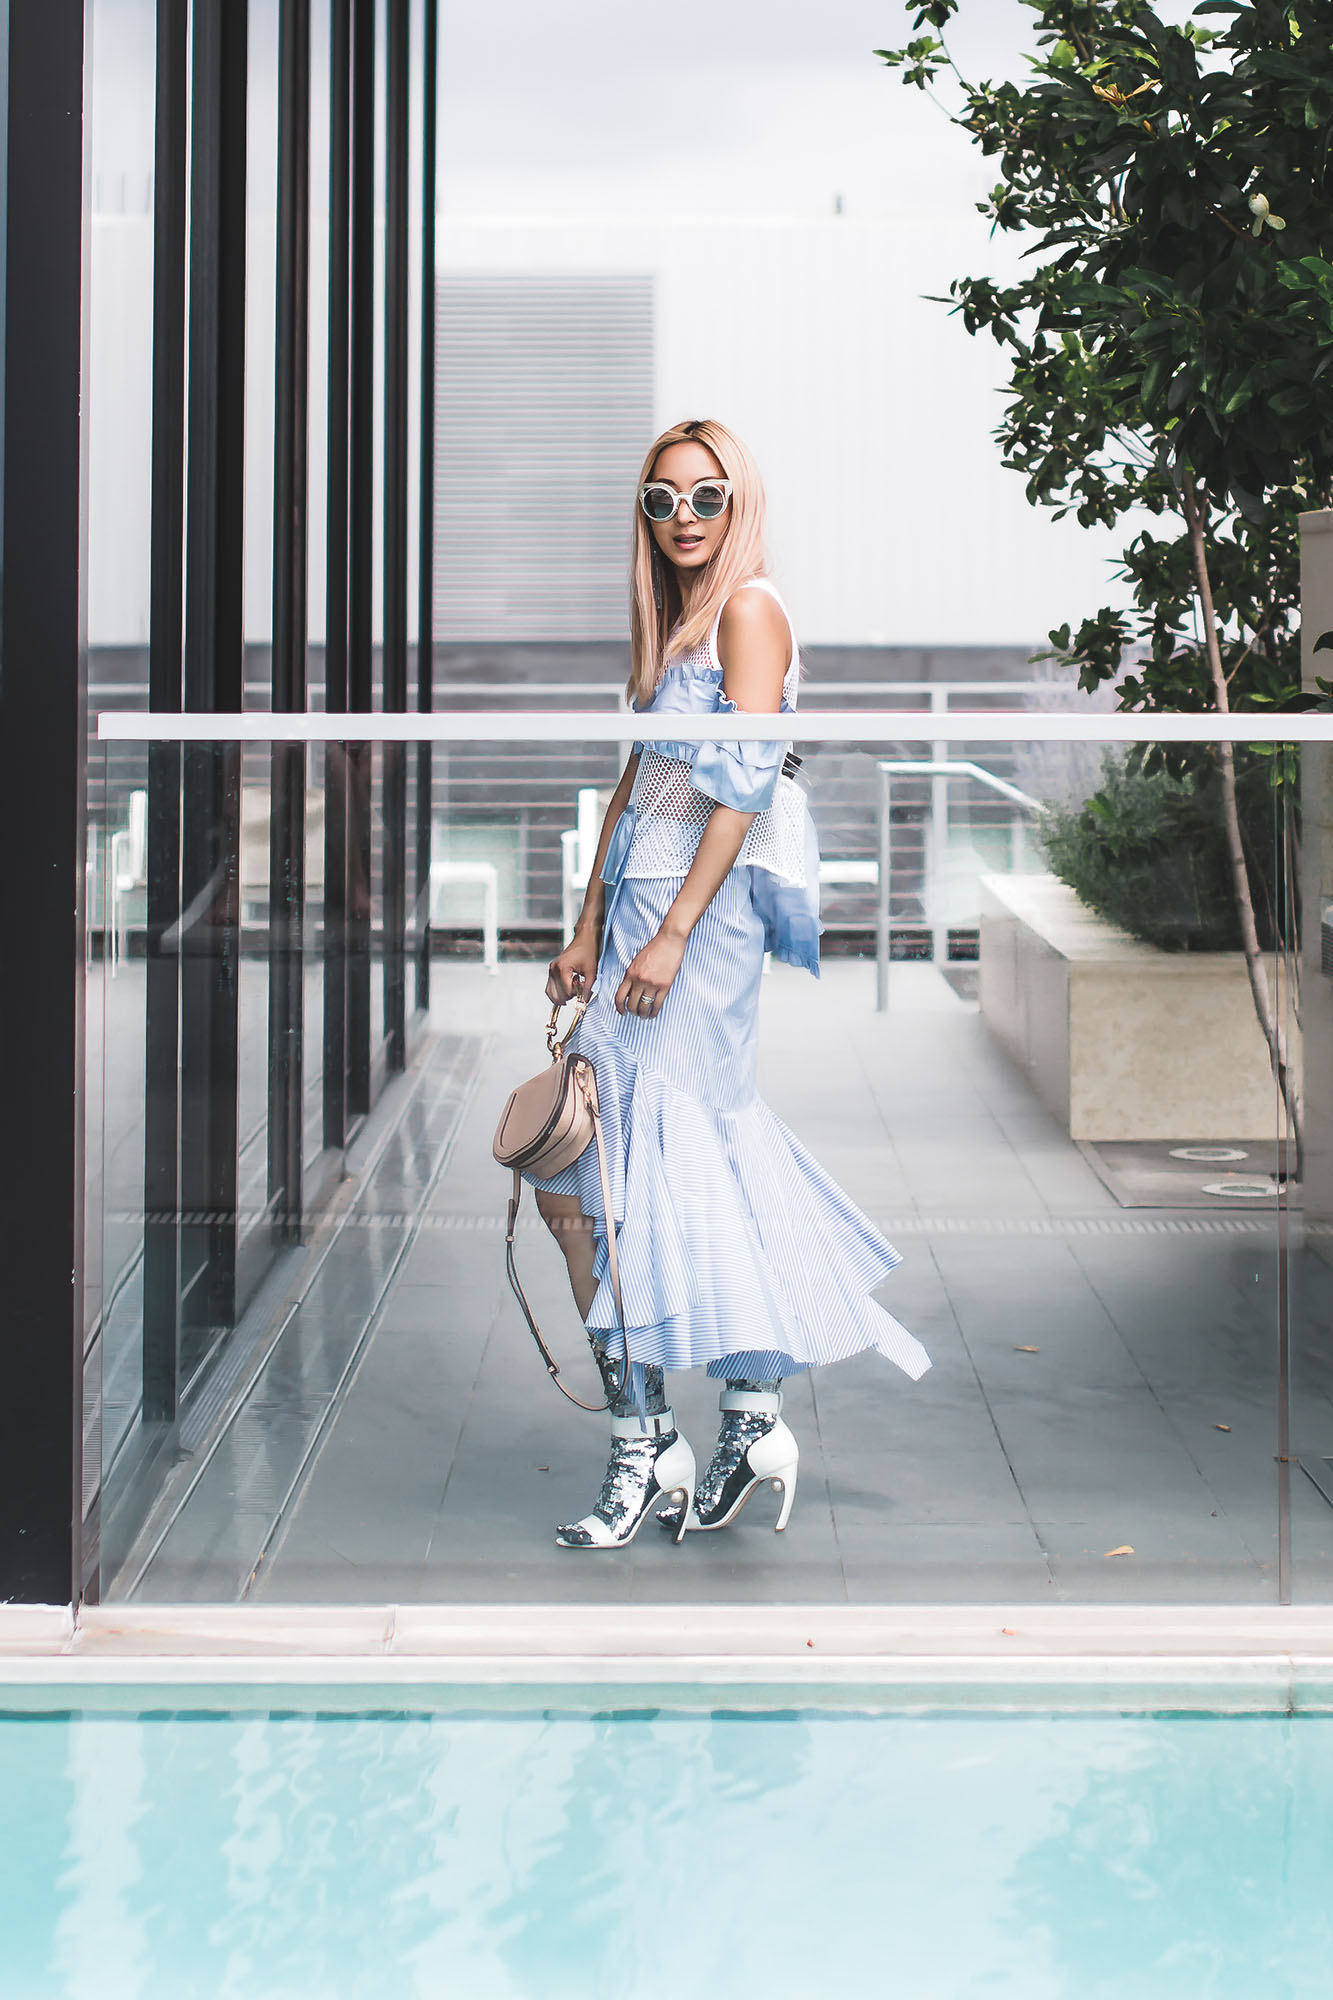 Anchyi Adorned Fashion blogger in Sandyn Liang ruffle open knit top, Off-White deconstructed shirting skirt, sequin socks and Chloe nile bracelet bag.